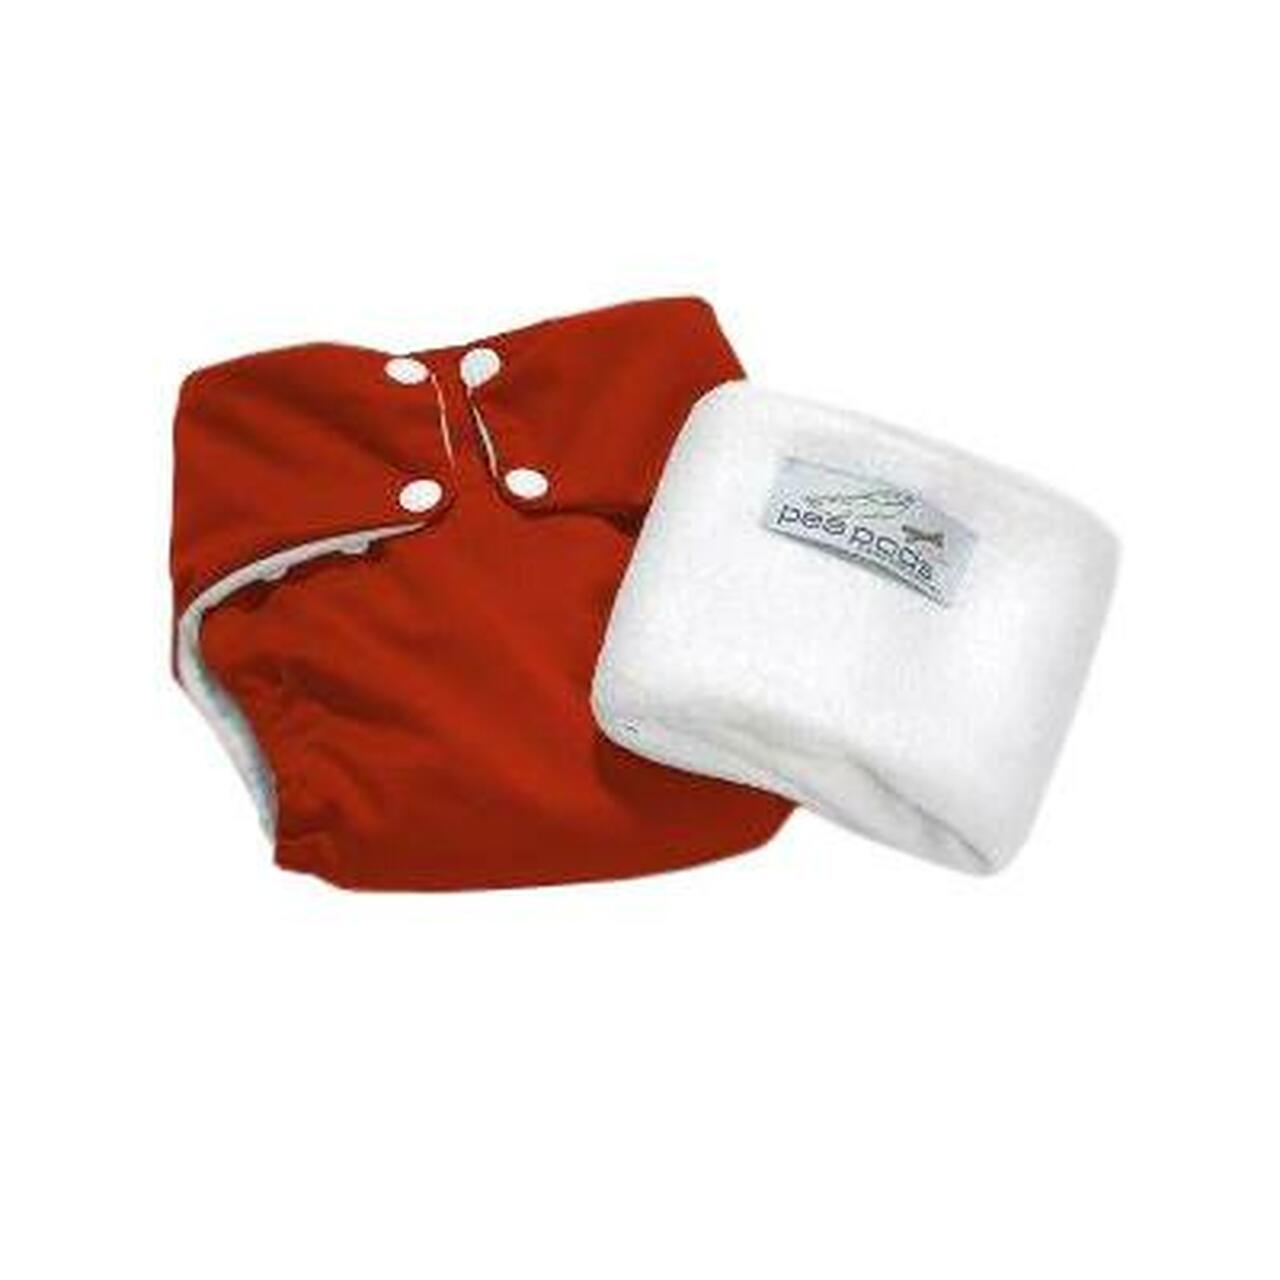 Pea Pods Modern Cloth Nappies One Size Fits Most at Baby Barn - Red